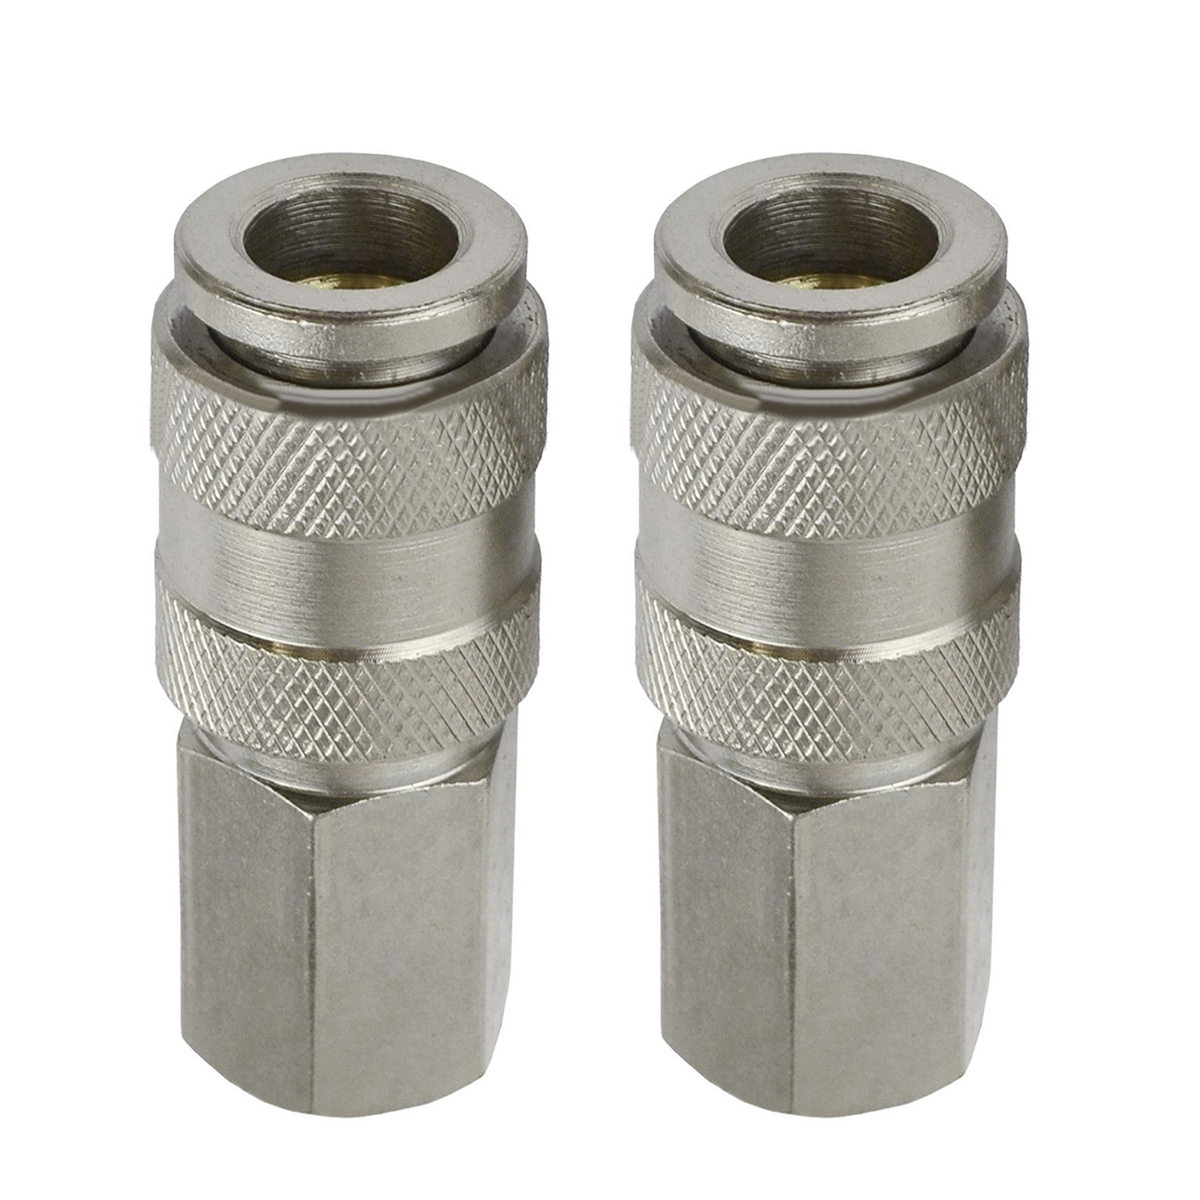 2pcs Euro Female Quick Release Fittings with 1/4 BSP Female Thread Air Line Hose Connectors empty inline water filter housing 12 x 2 5 refillable in line cartridge with 2pcs 1 4 quick connect fittings